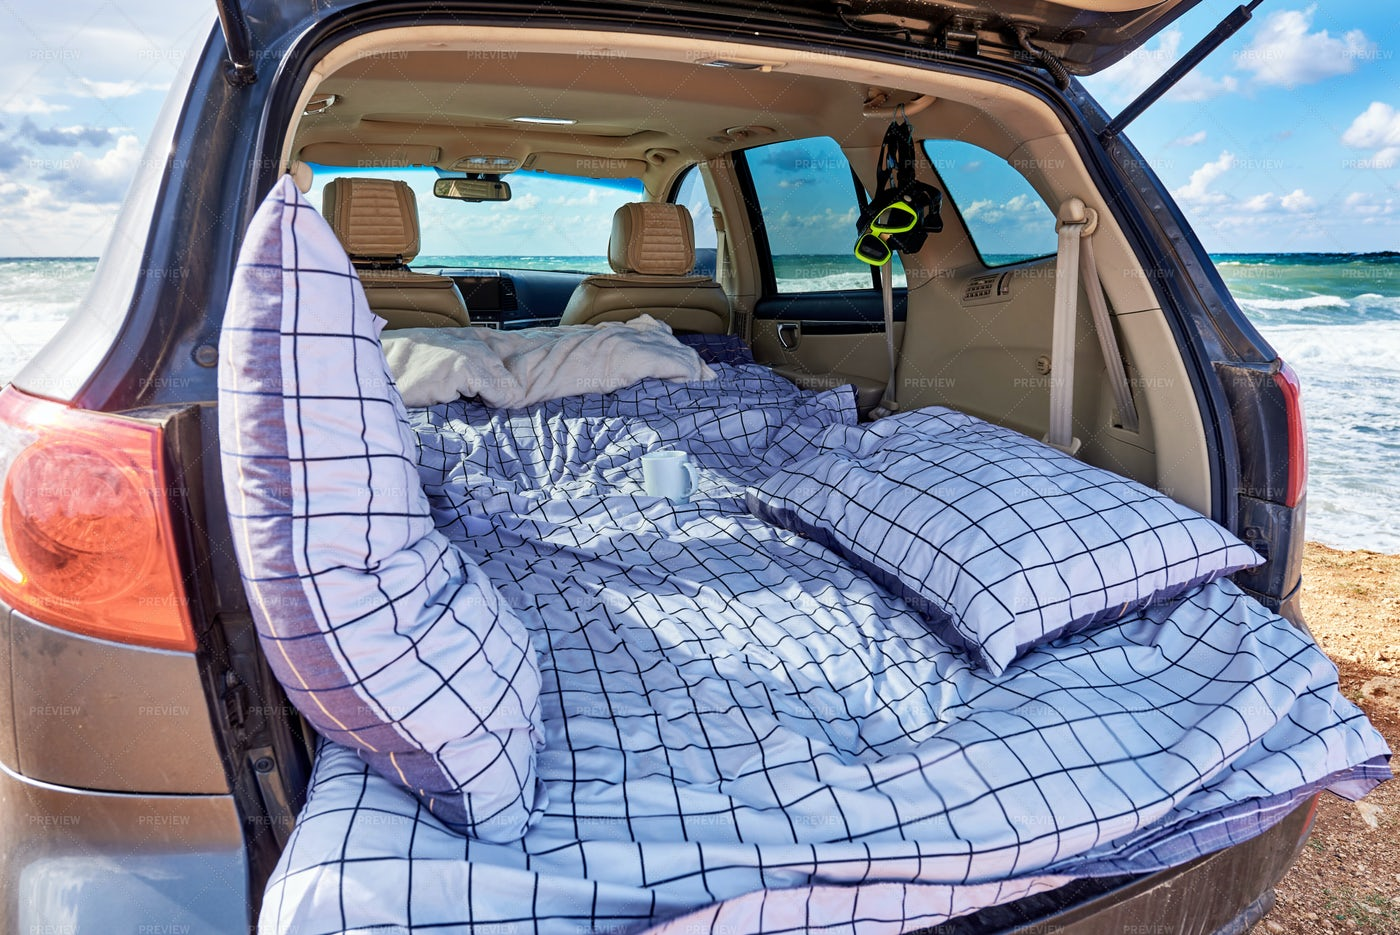 A Bed In Car Trunk: Stock Photos